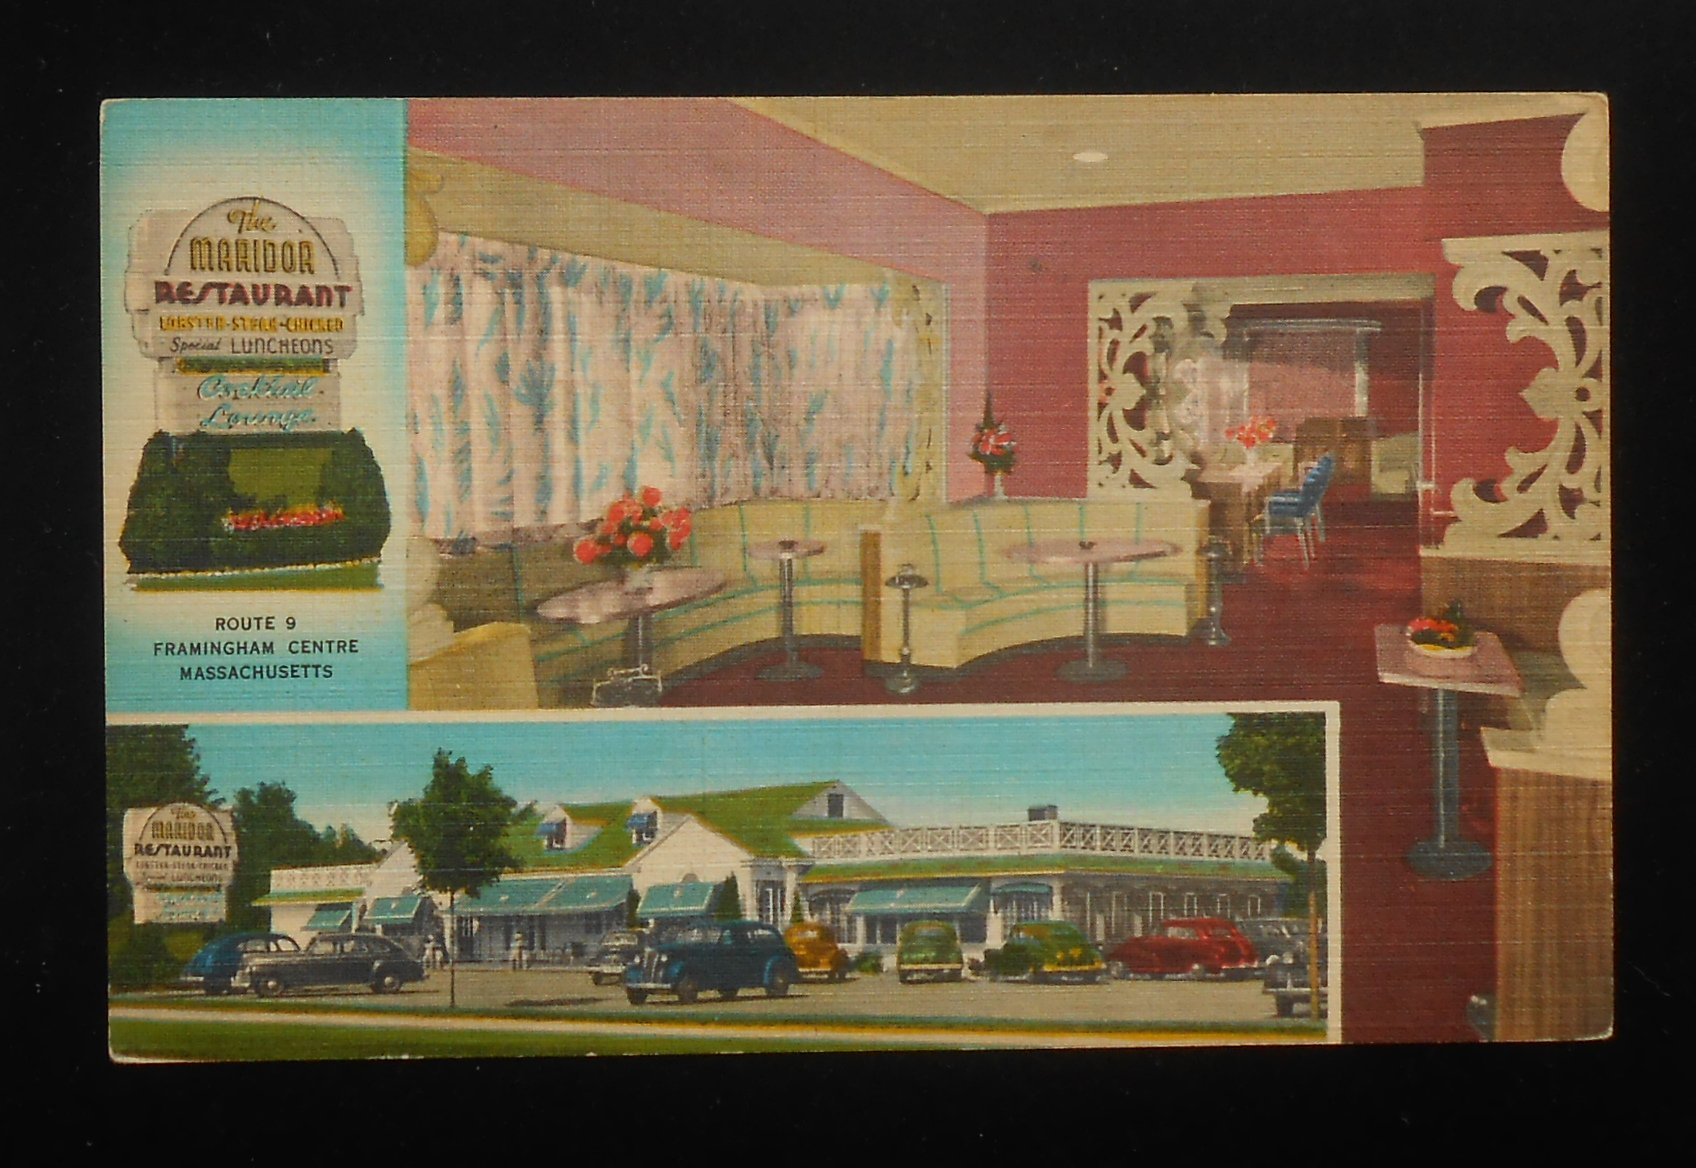 1940s interior the maridor restaurant phone 8737 route 9 old cars framingham ma ebay. Black Bedroom Furniture Sets. Home Design Ideas